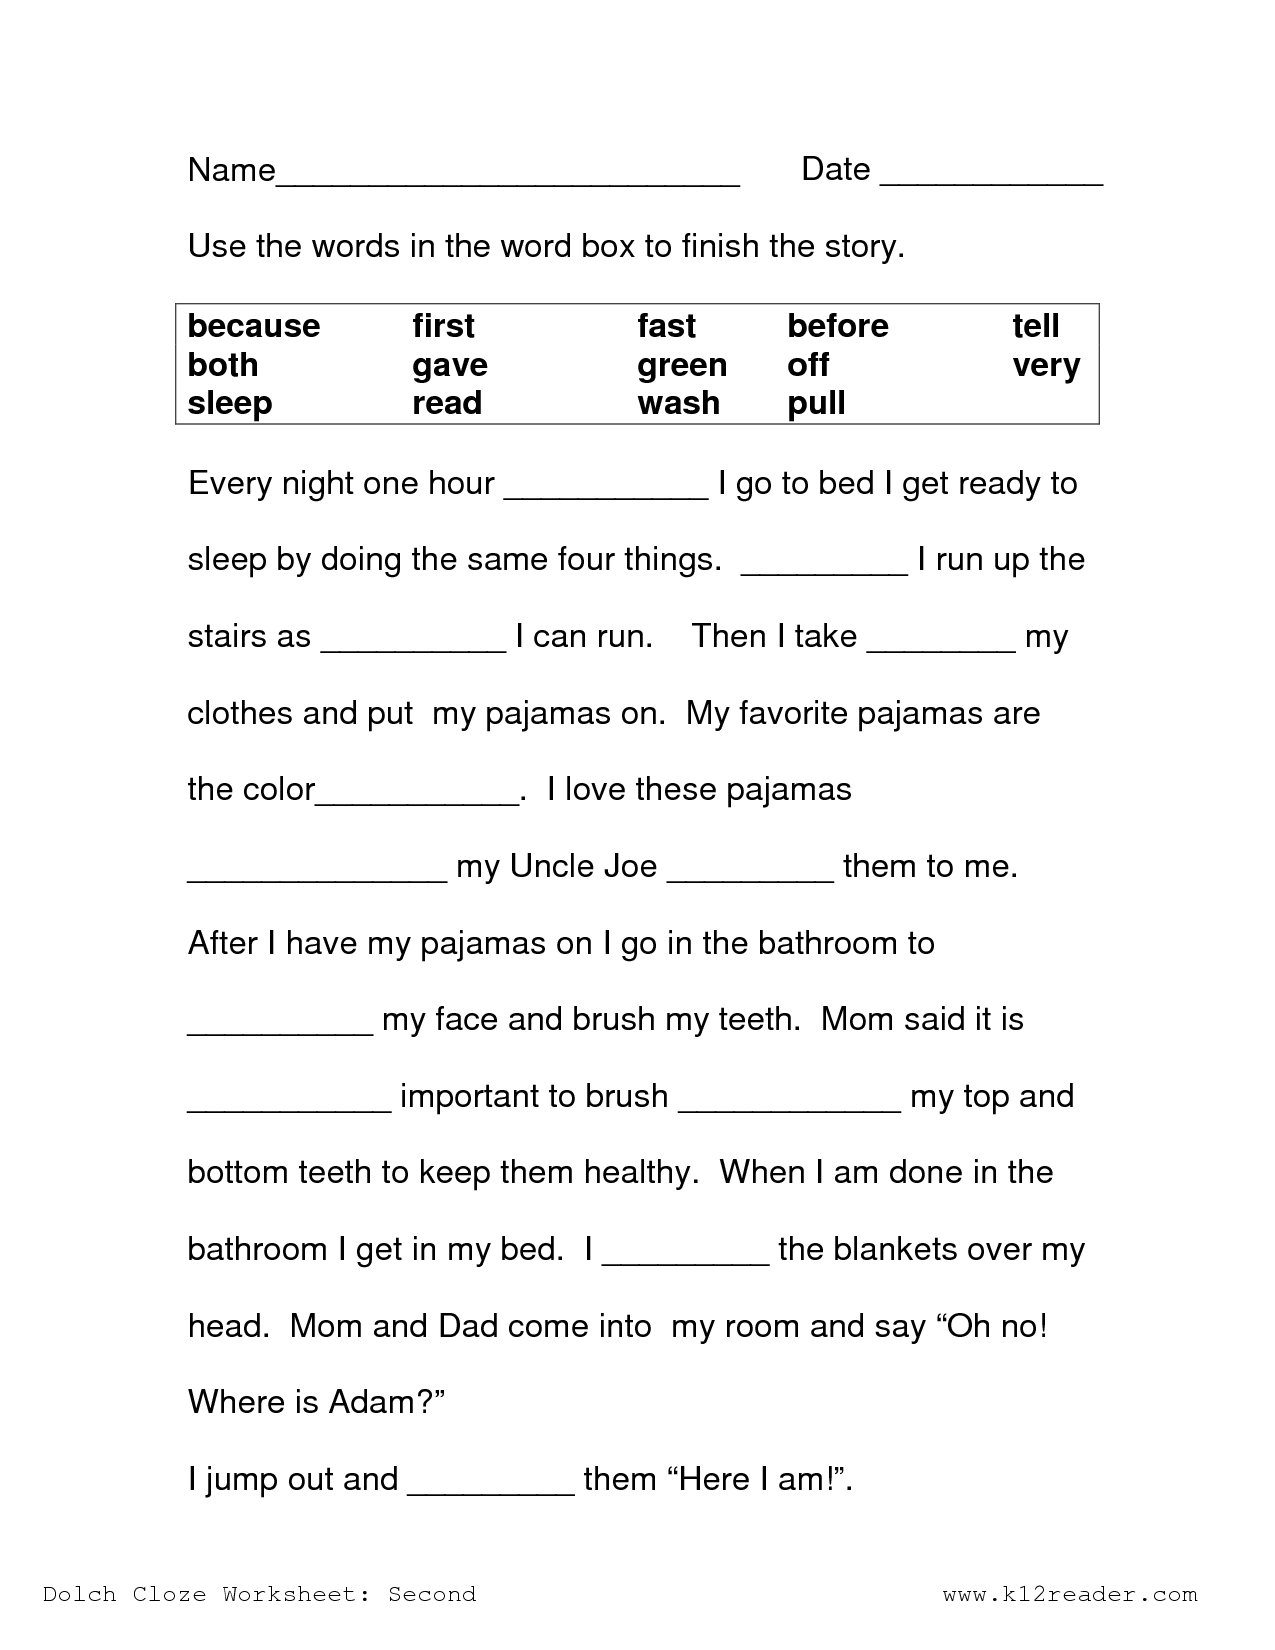 Reading Comprehension Worksheets Free 4th Grade Deployday – Printable Reading Comprehension Worksheets